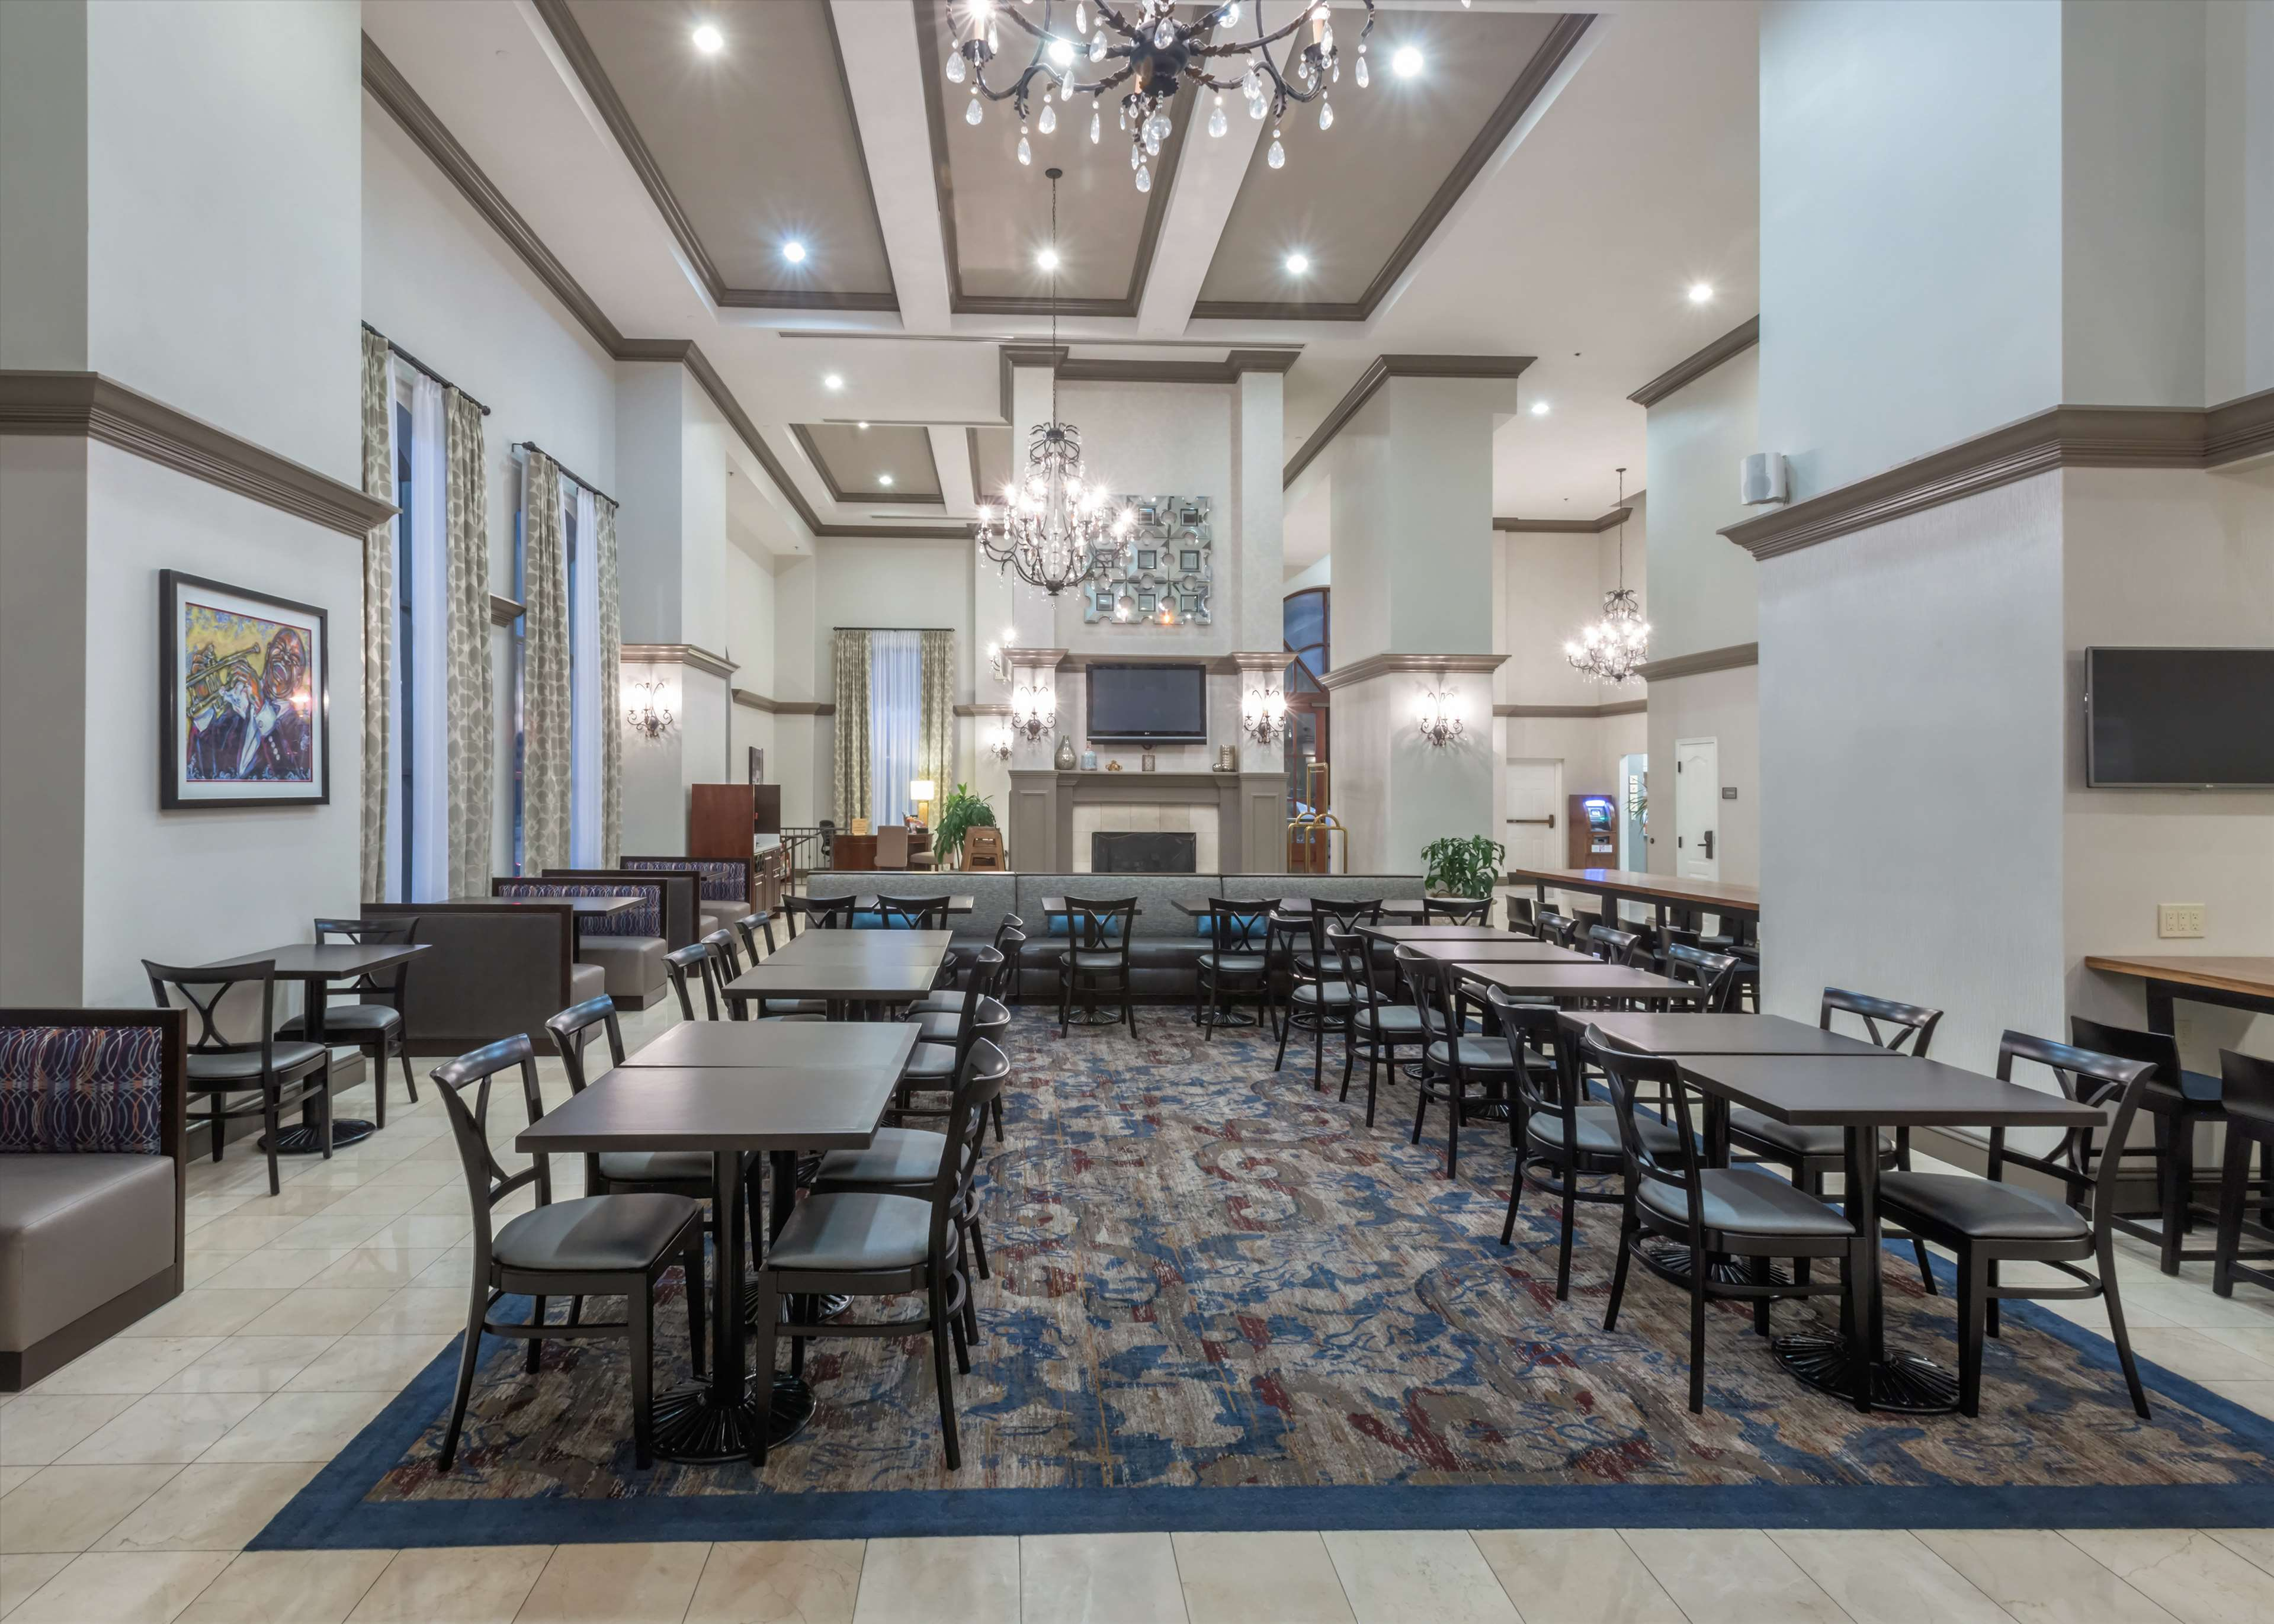 Homewood Suites by Hilton New Orleans image 1